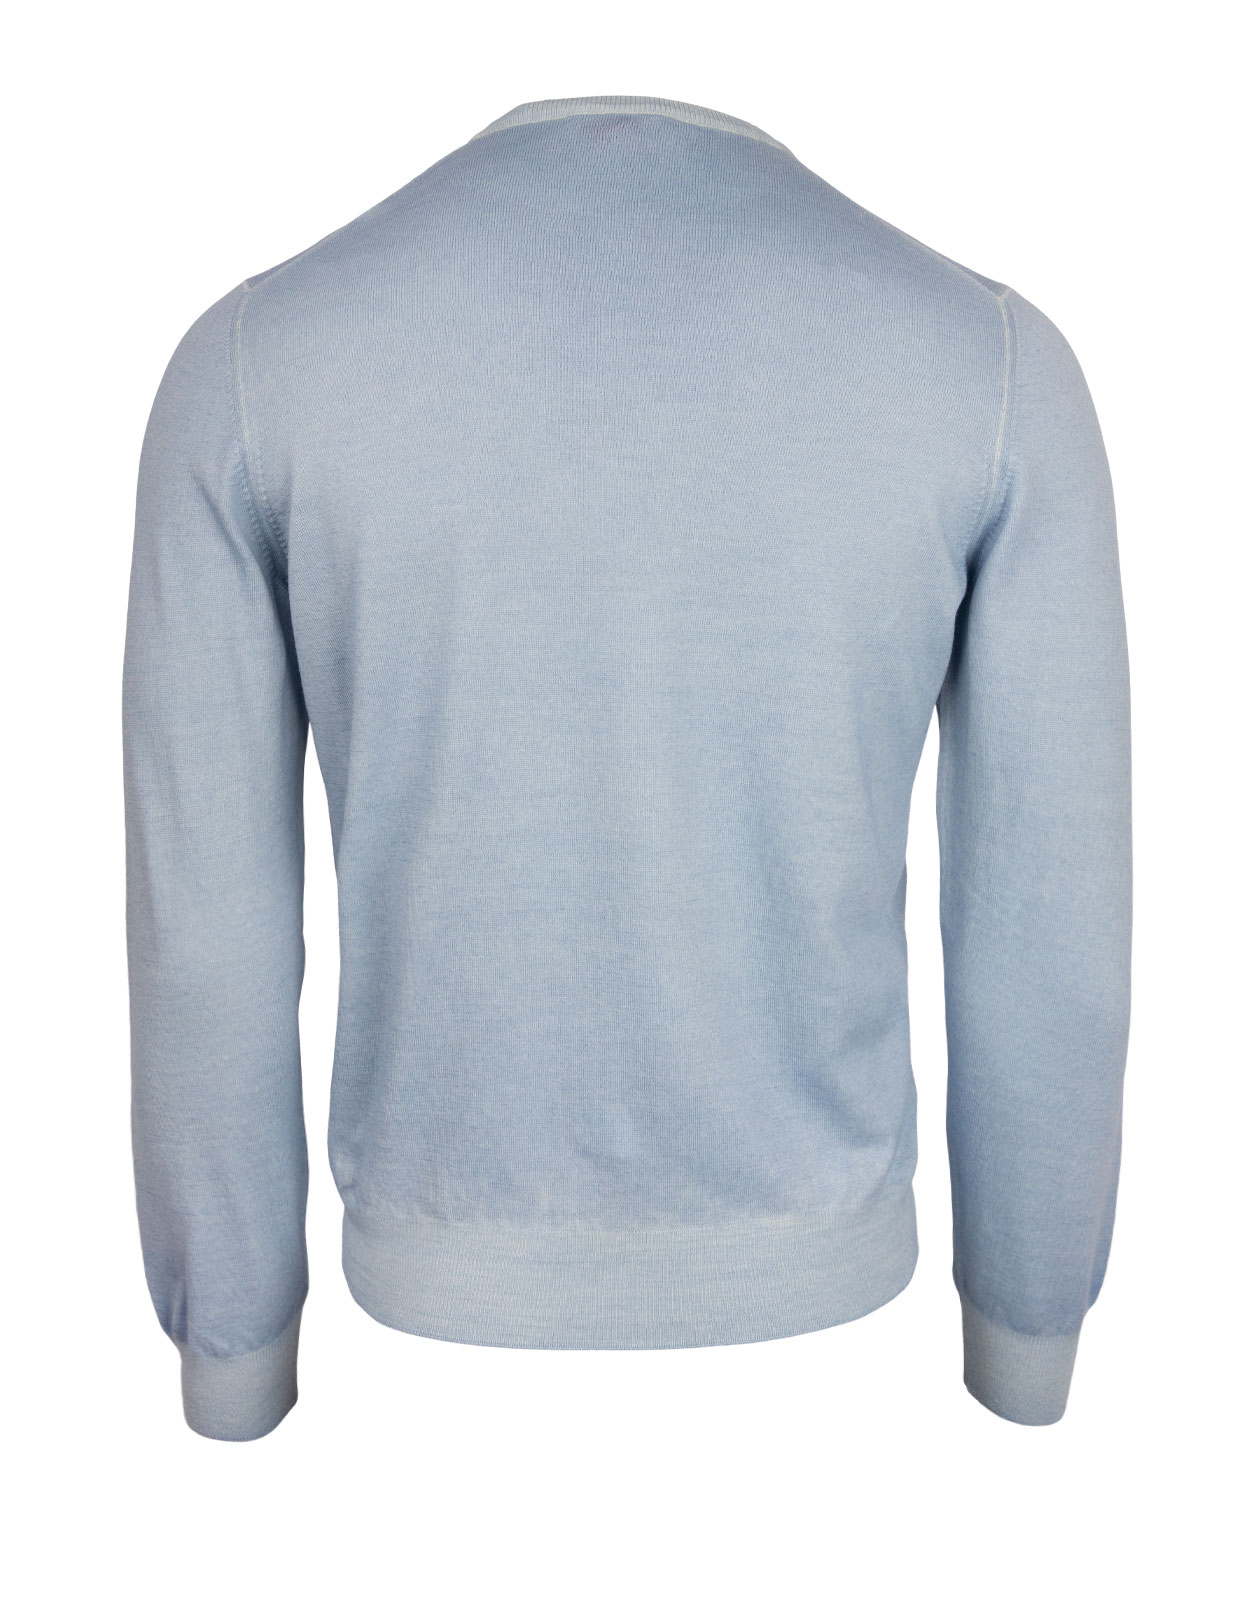 Crew Neck Vintage Summer Merino Light Blue